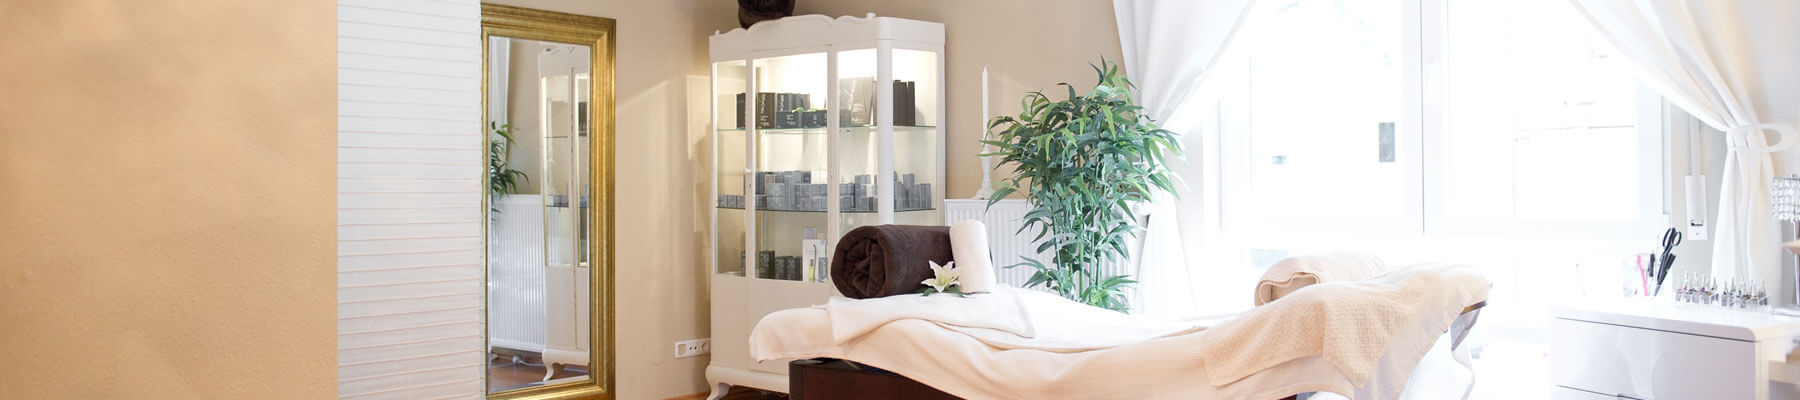 Professionelles Permanent Make-up in Wiesbaden